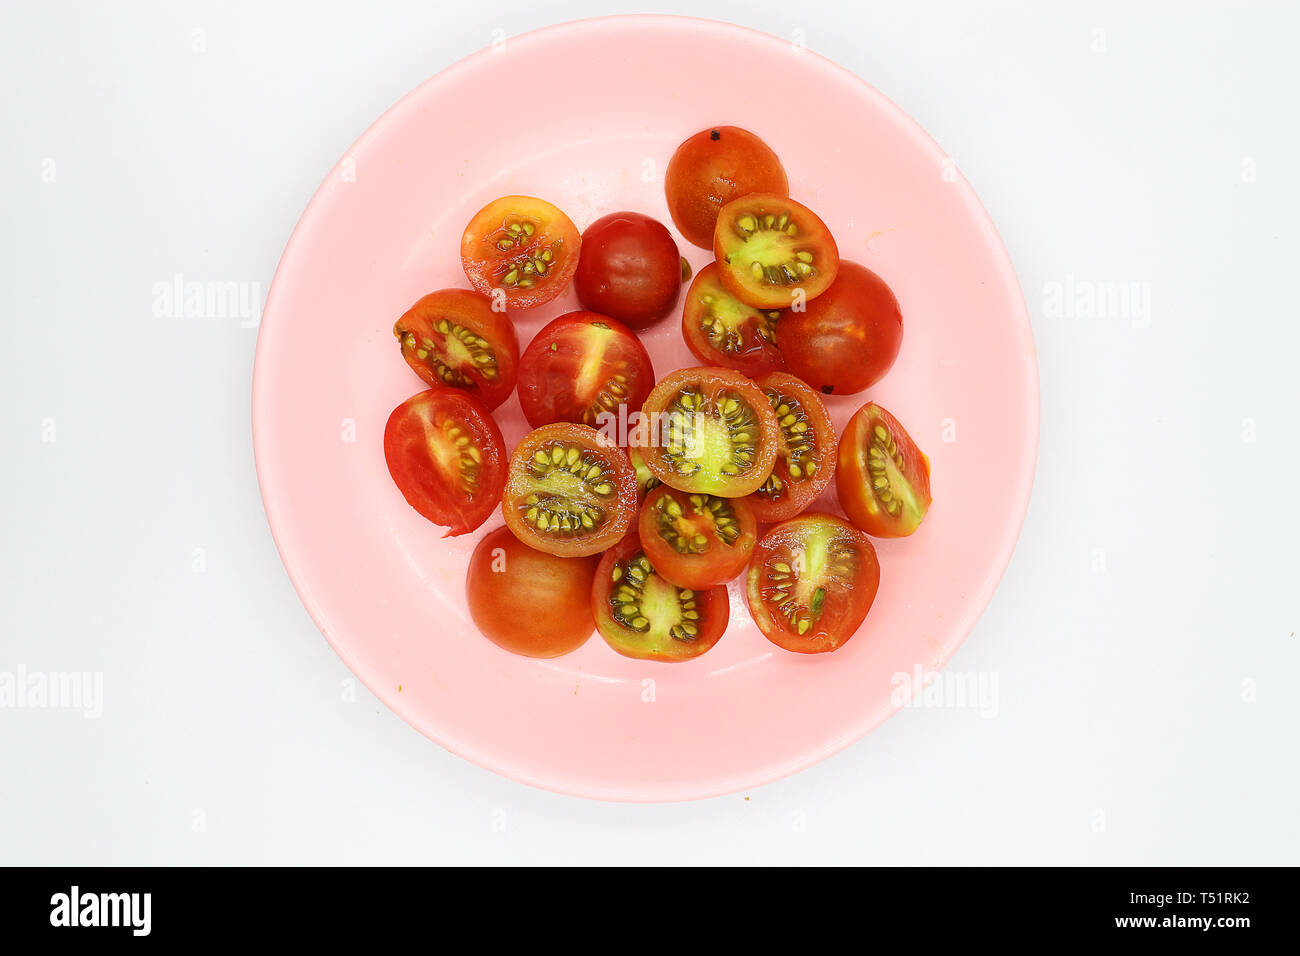 shopped tomatoes in pink dish on white background. - Stock Image